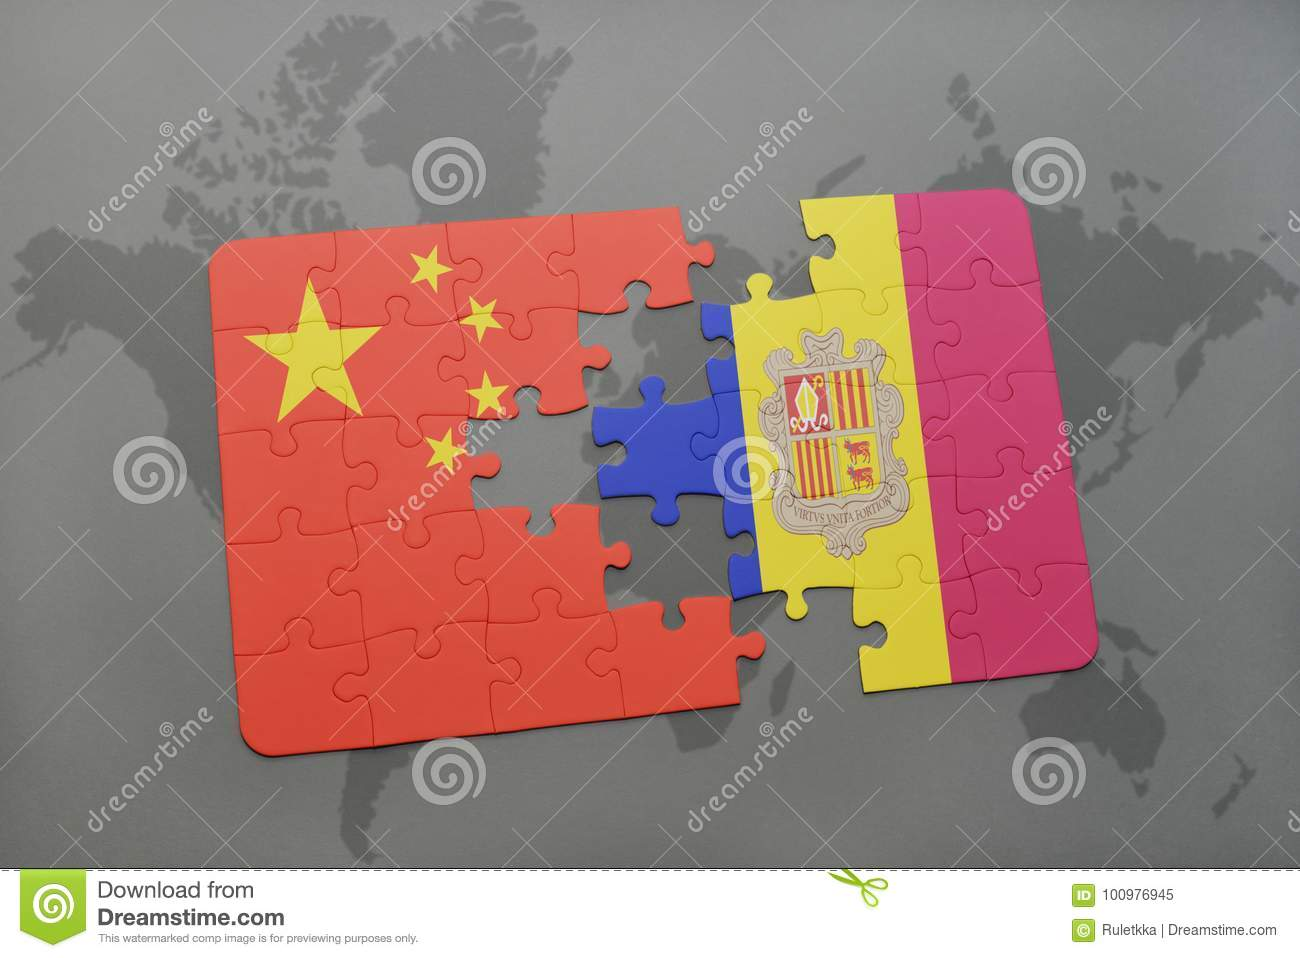 Puzzle with the national flag of china and andorra on a world map download comp gumiabroncs Images